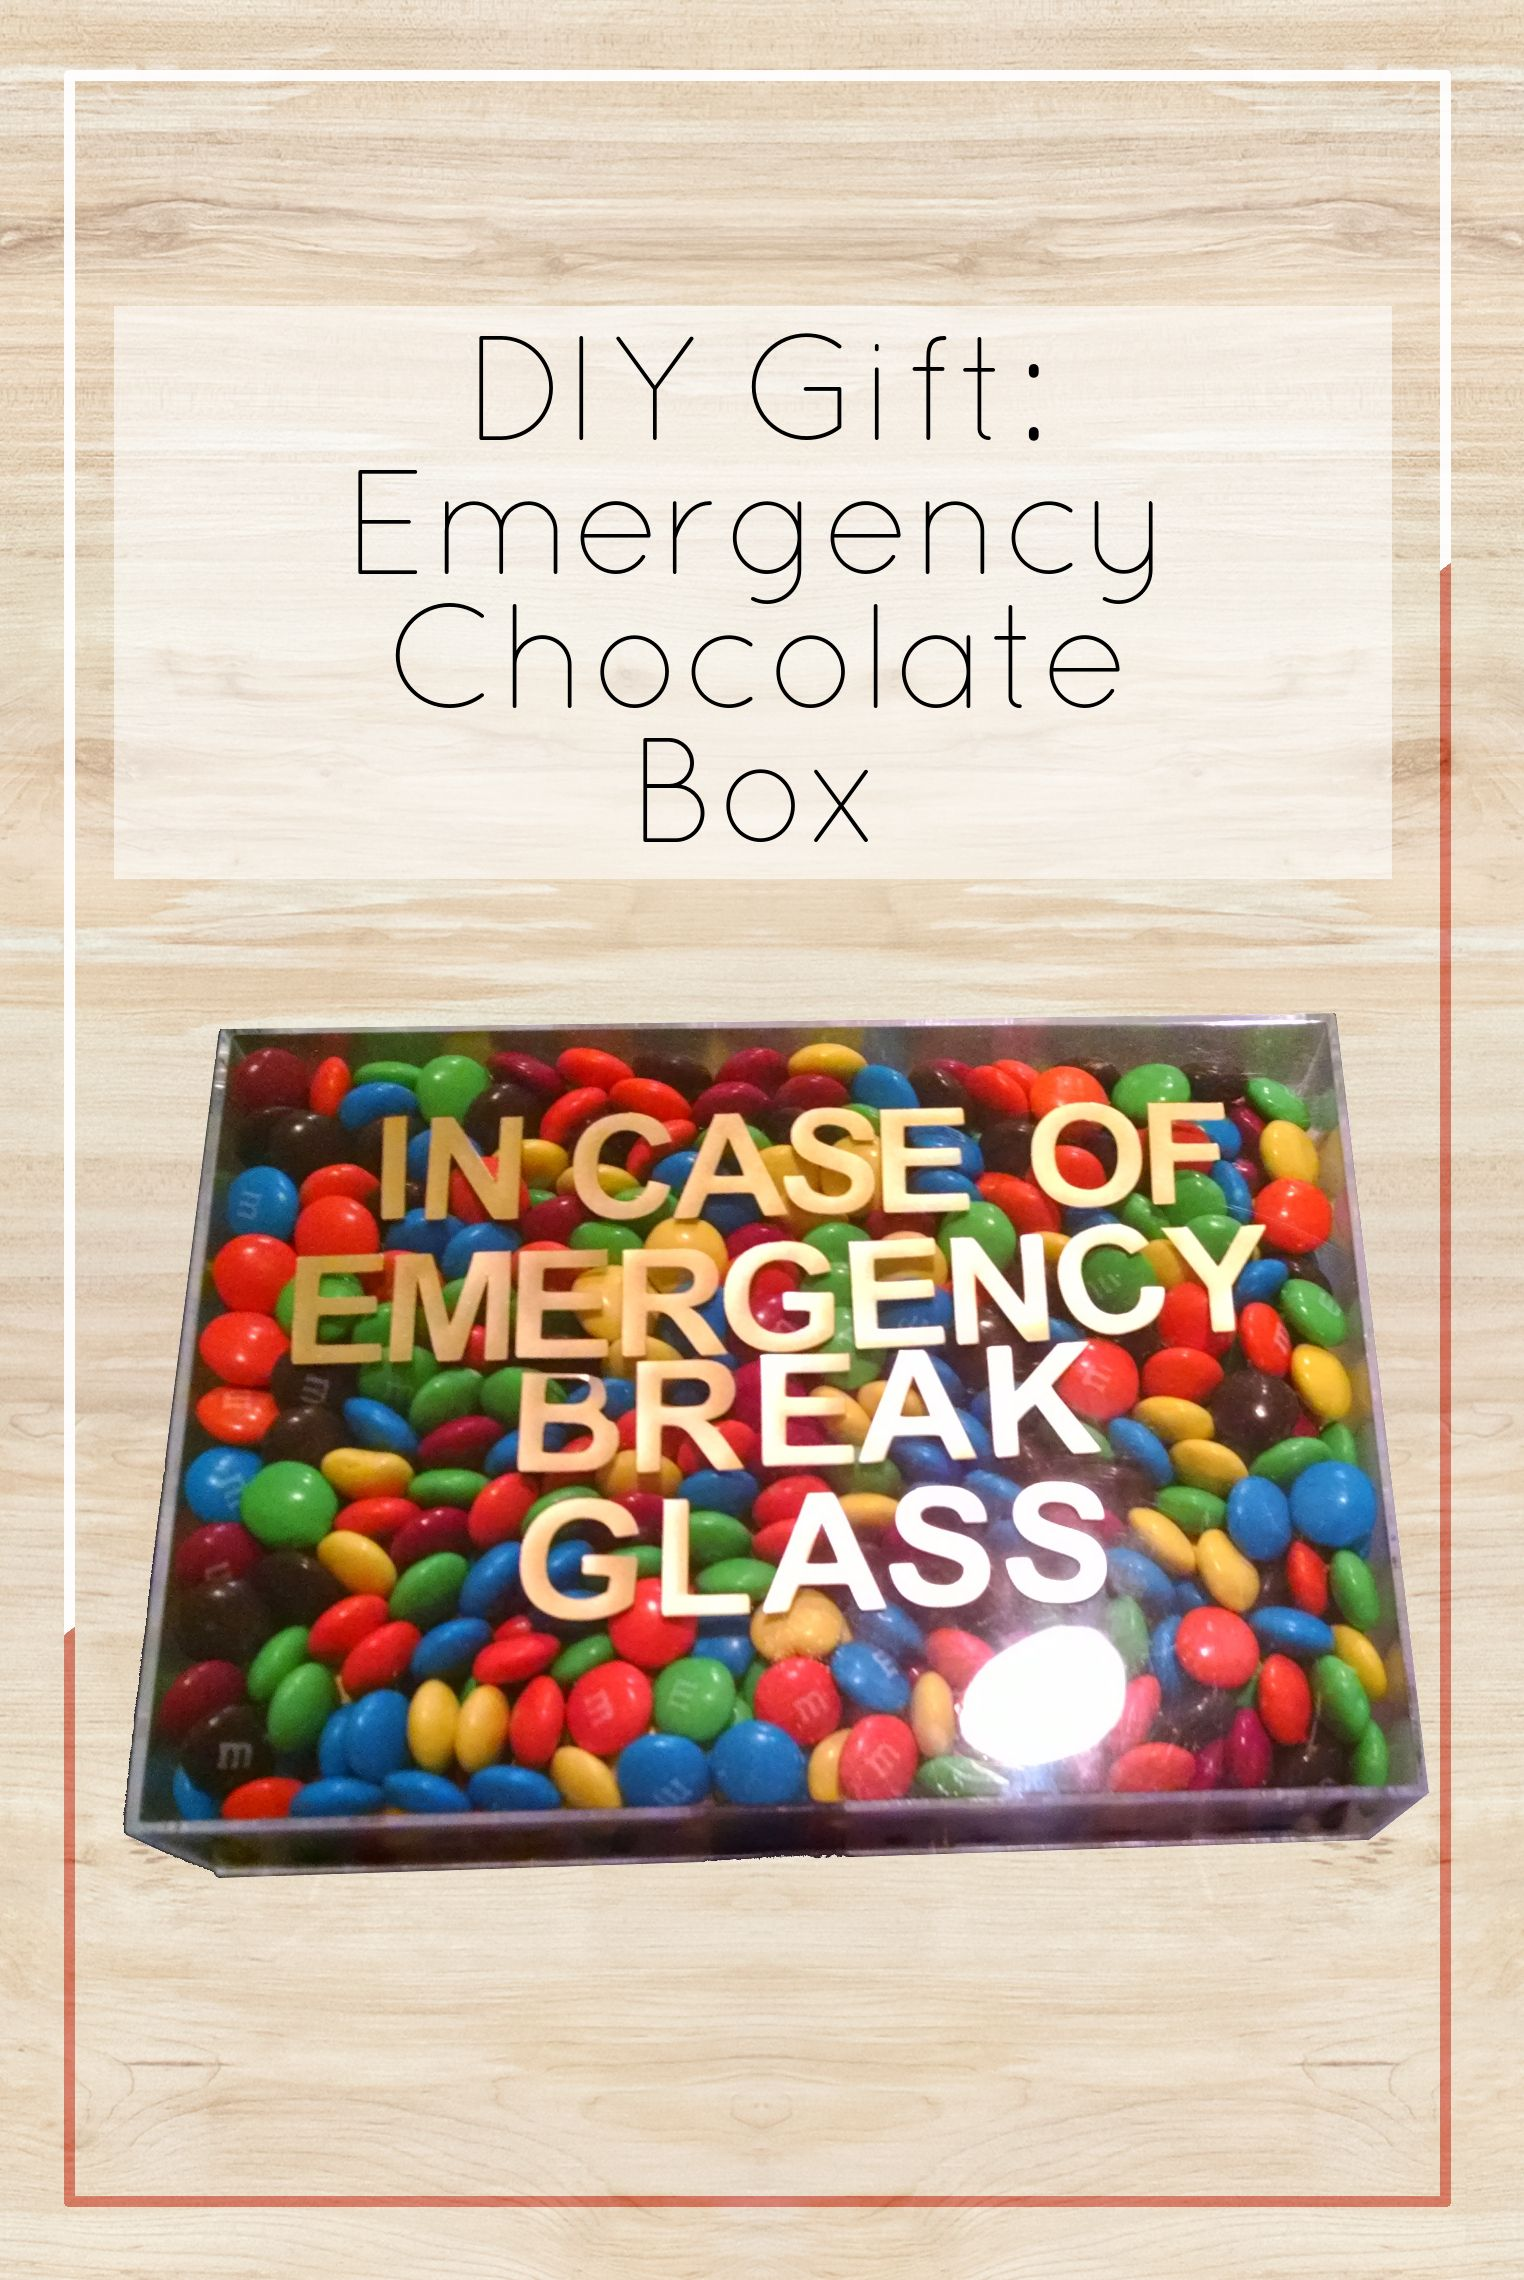 DIY Gift Idea: Emergency Chocolate